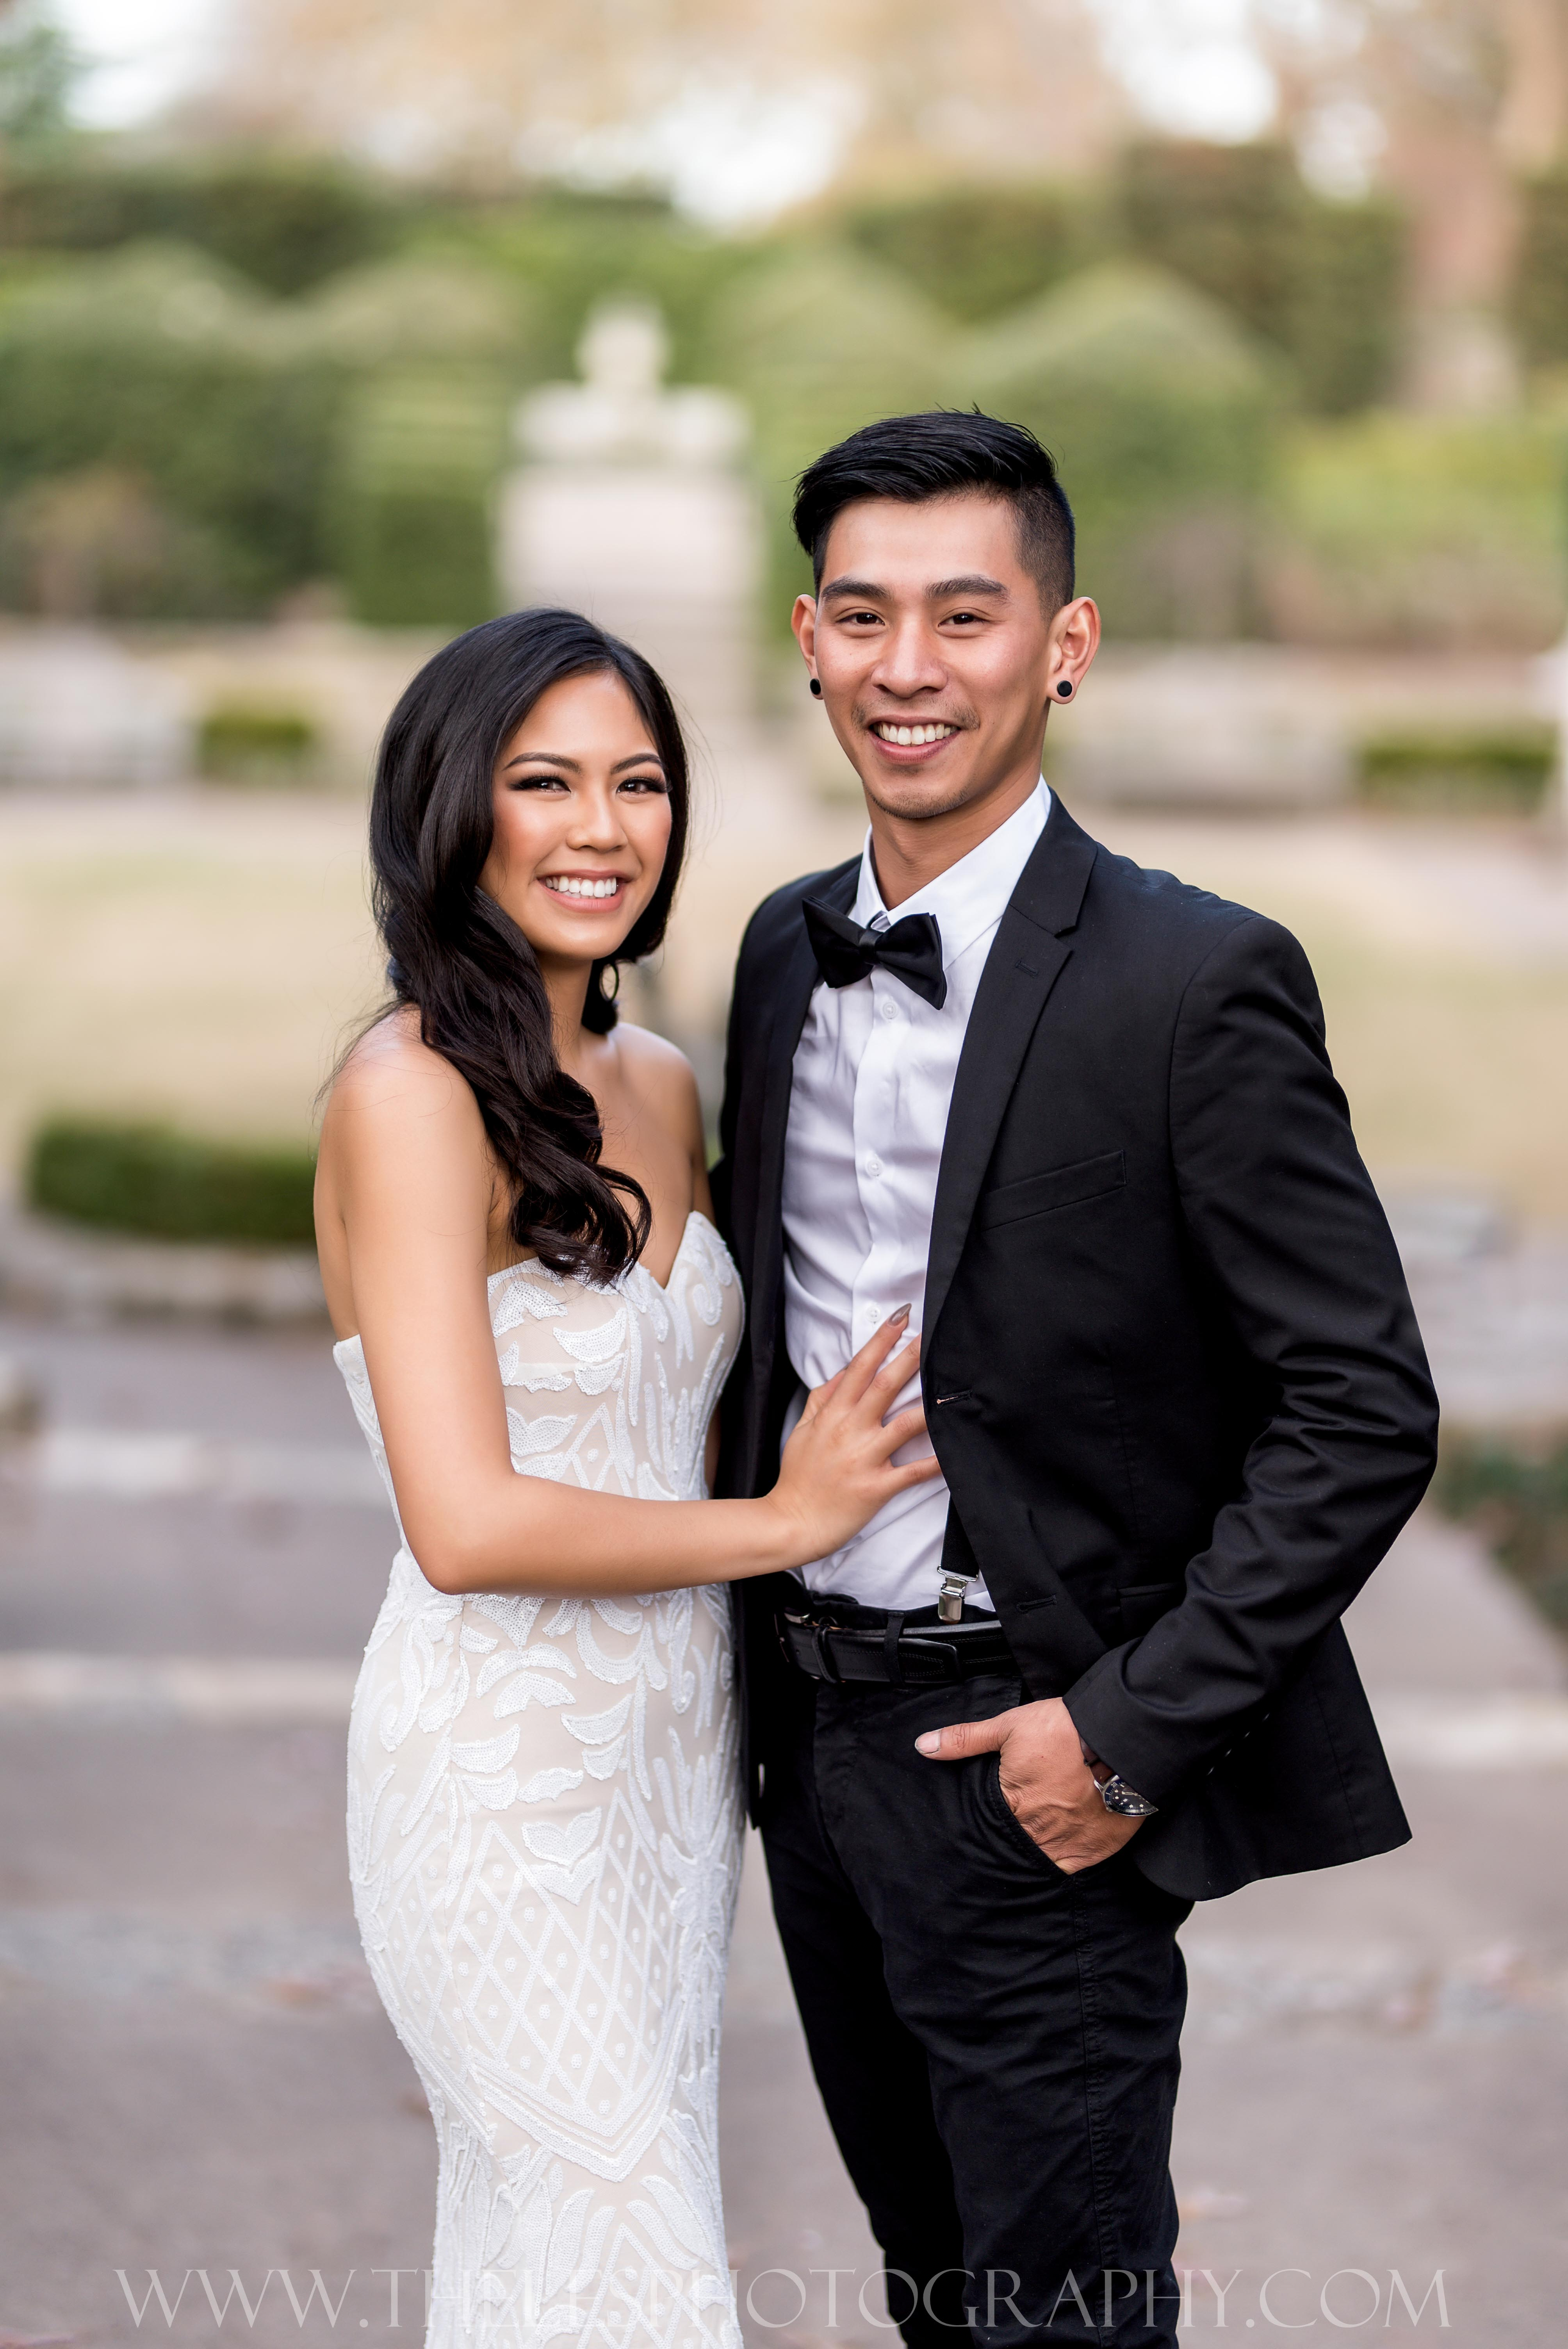 Thu and Hieu's Engagement Highlight 02